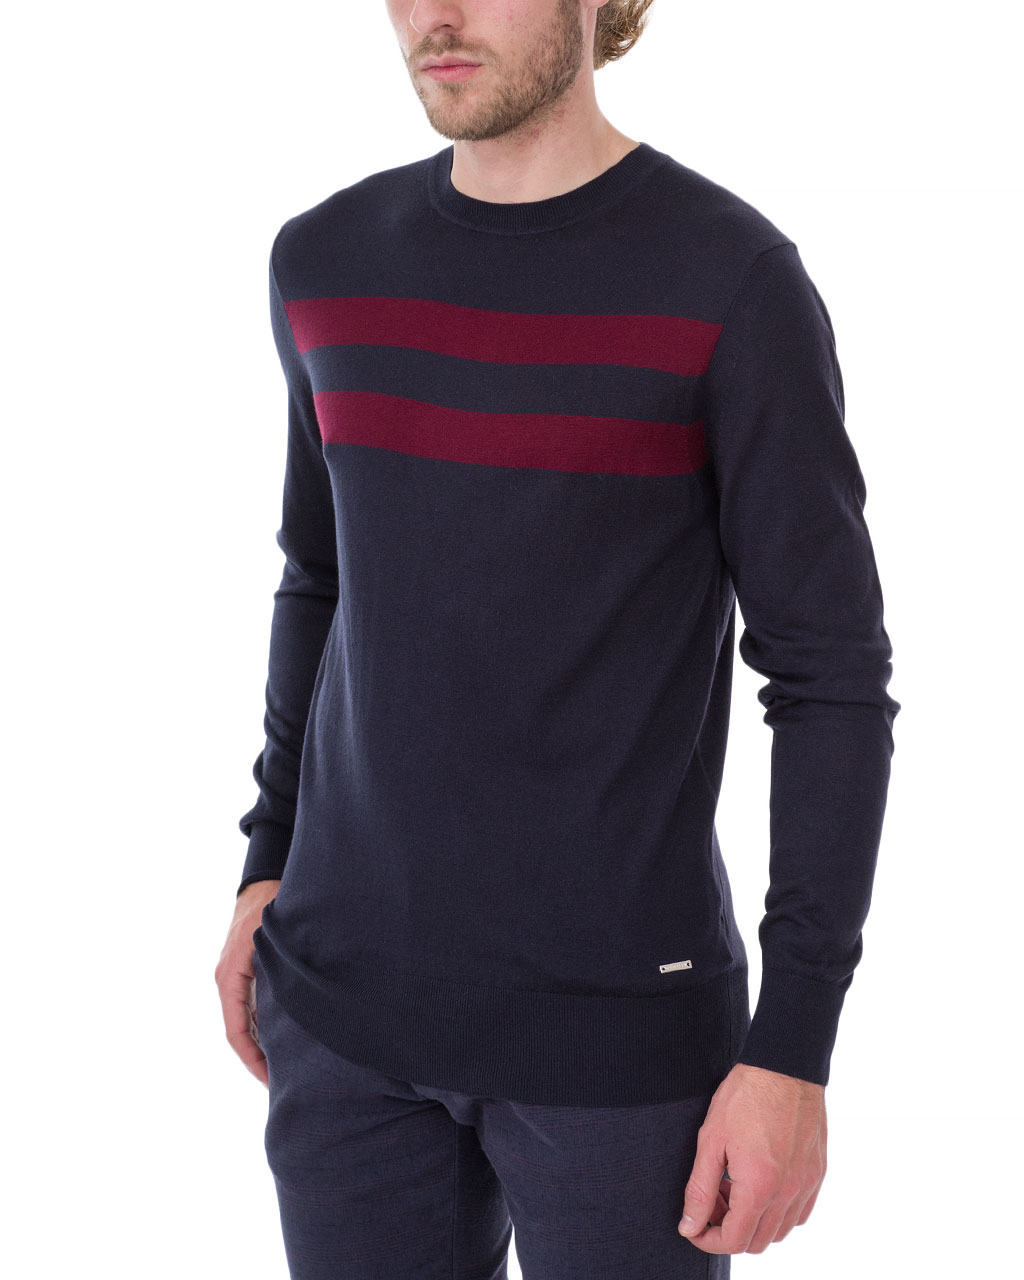 Men's jumper 1860-319/19-20 (4)